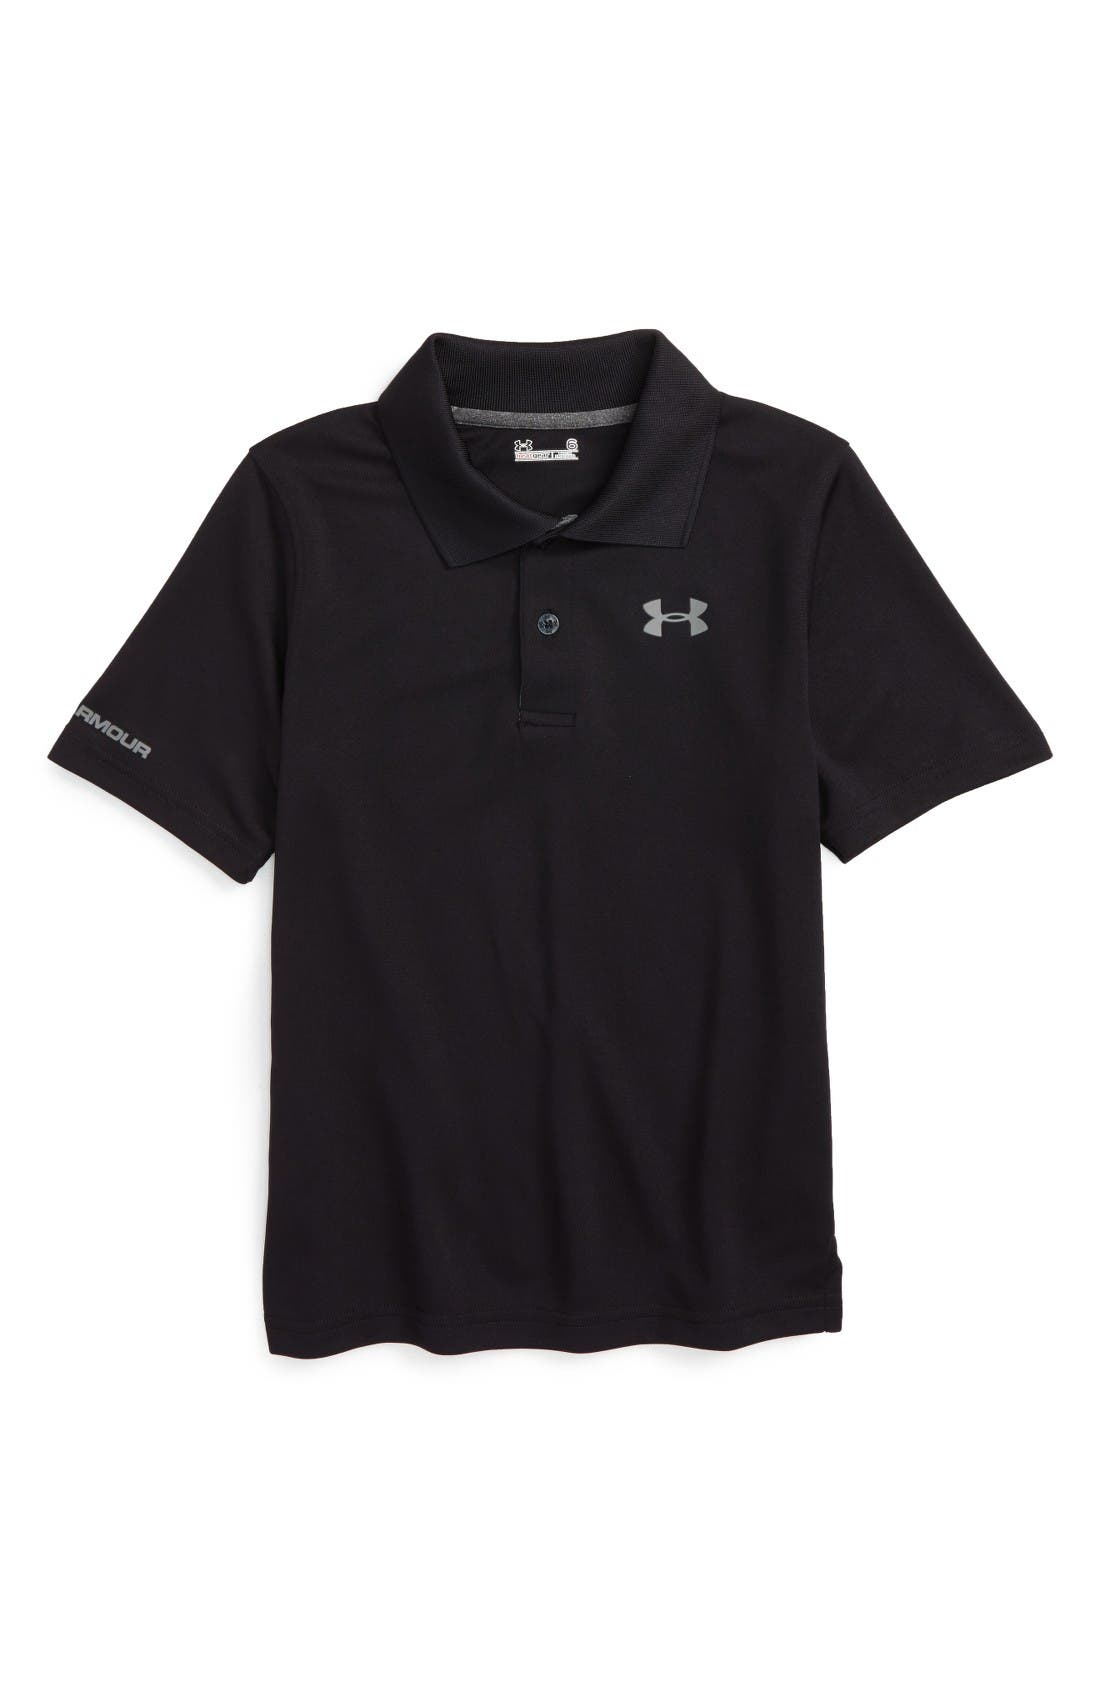 Match Play HeatGear<sup>®</sup> Polo,                         Main,                         color, Black